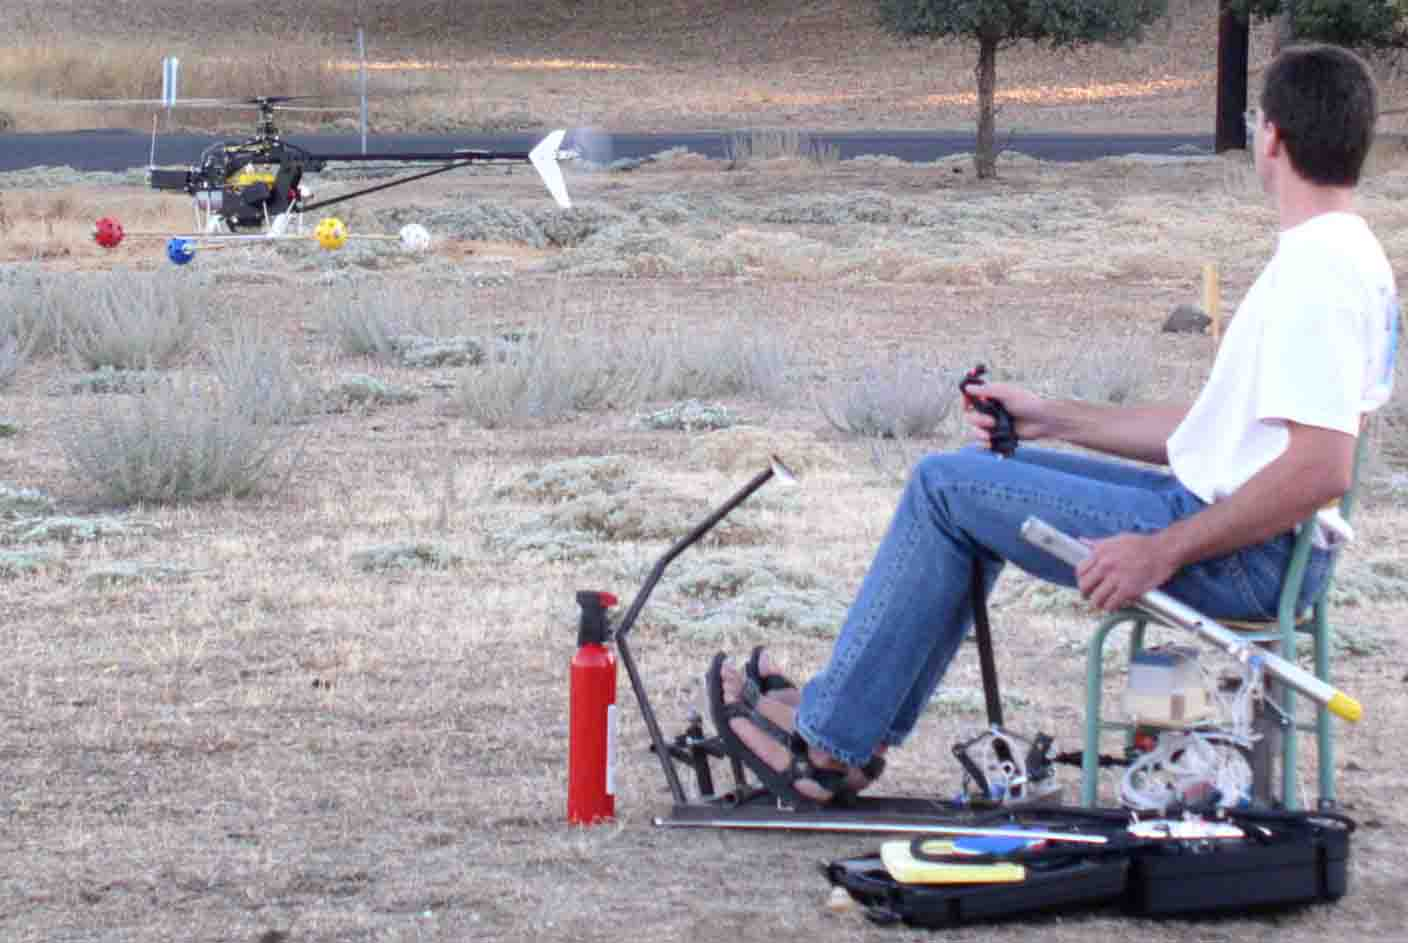 Helicopter flight training device heli chair helichair heli chair solutioingenieria Images